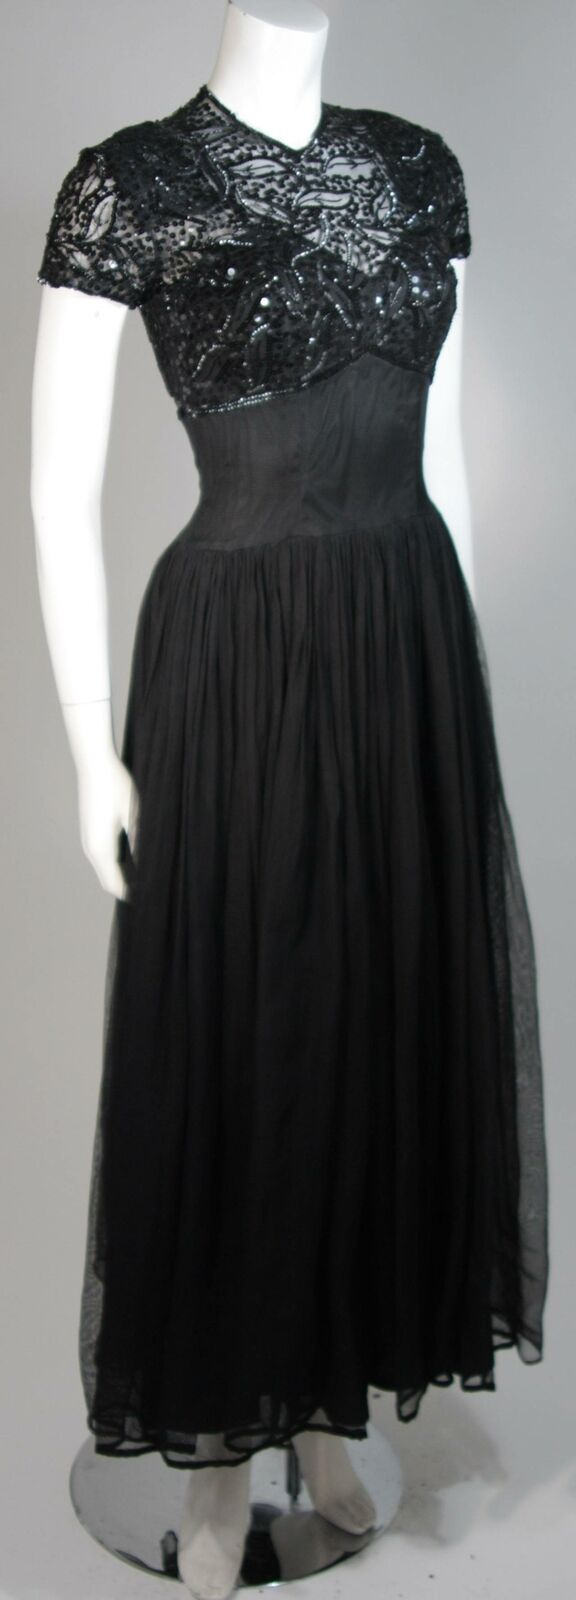 CEIL CHAPMAN Attributed Black Gown Size Small - image 5